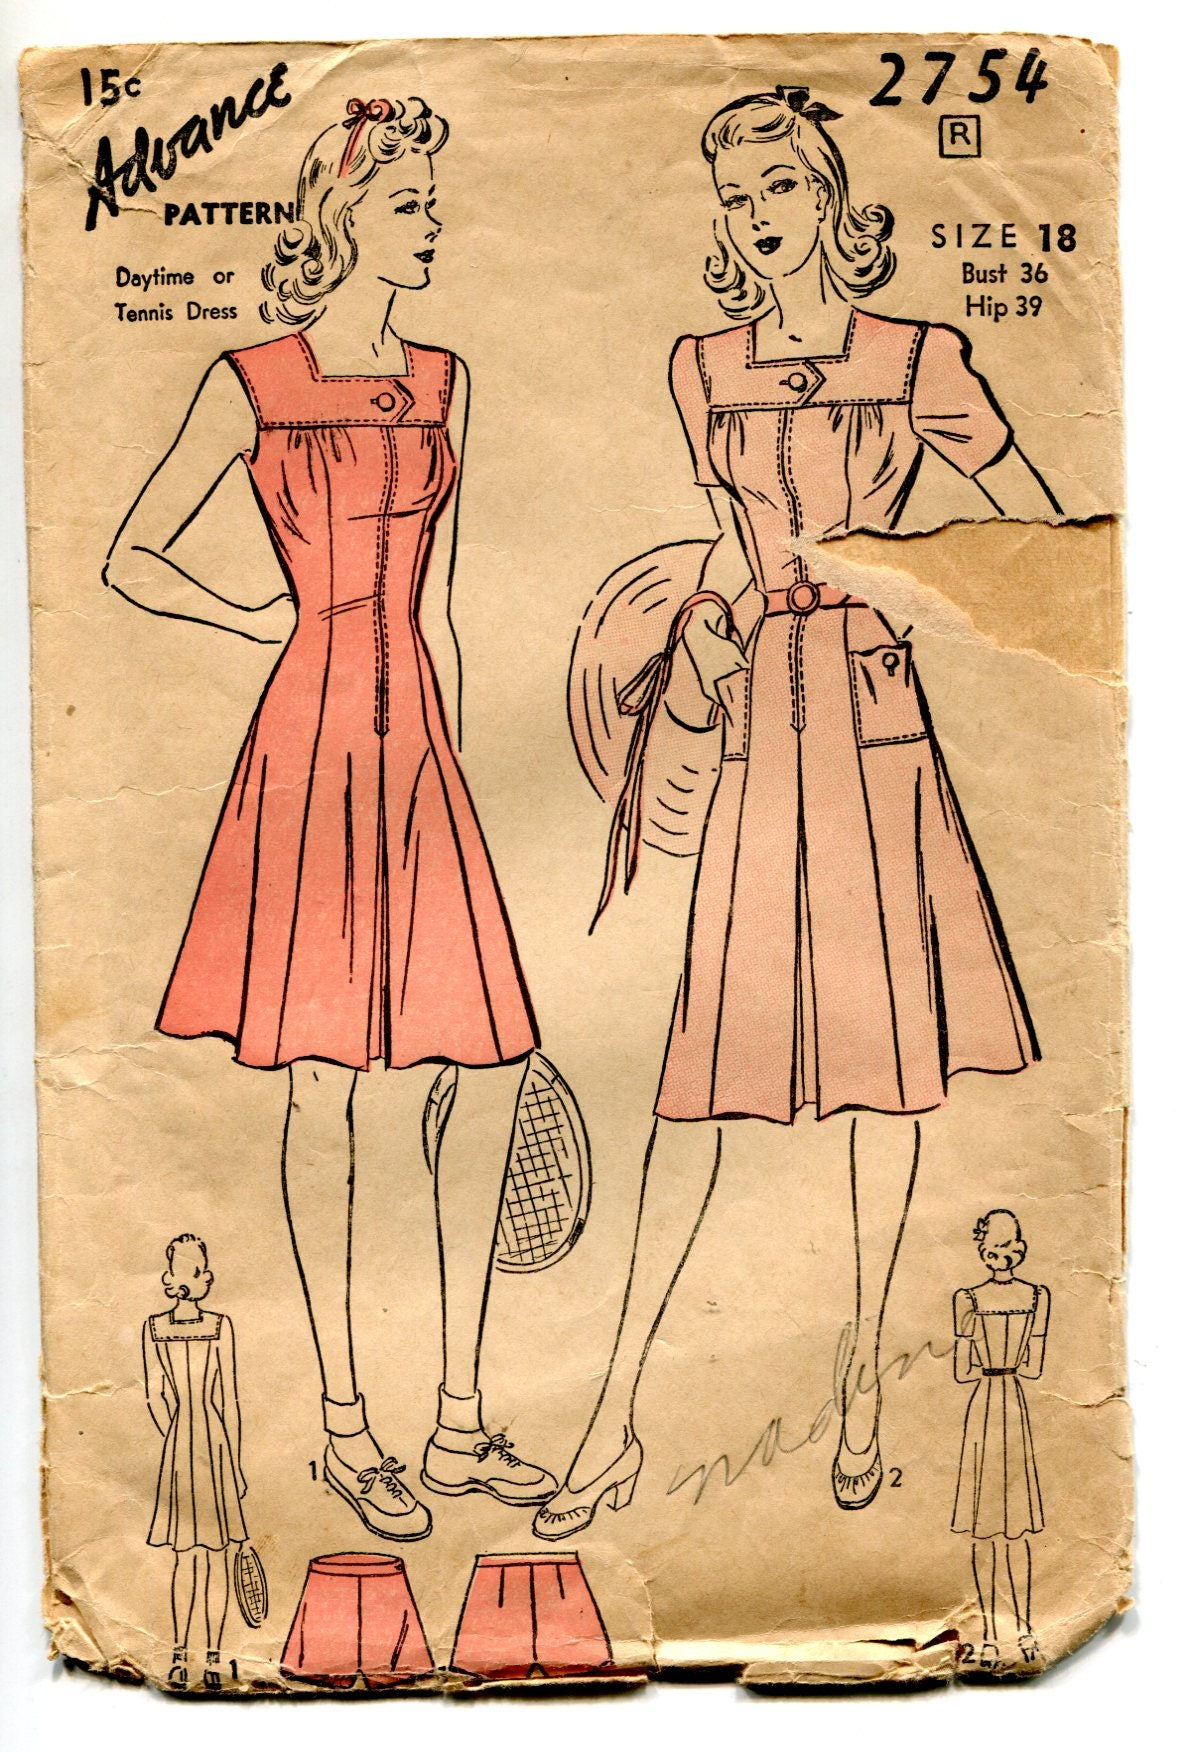 Advance 2754 WW2 1940s day or tennis dress and panties pattern